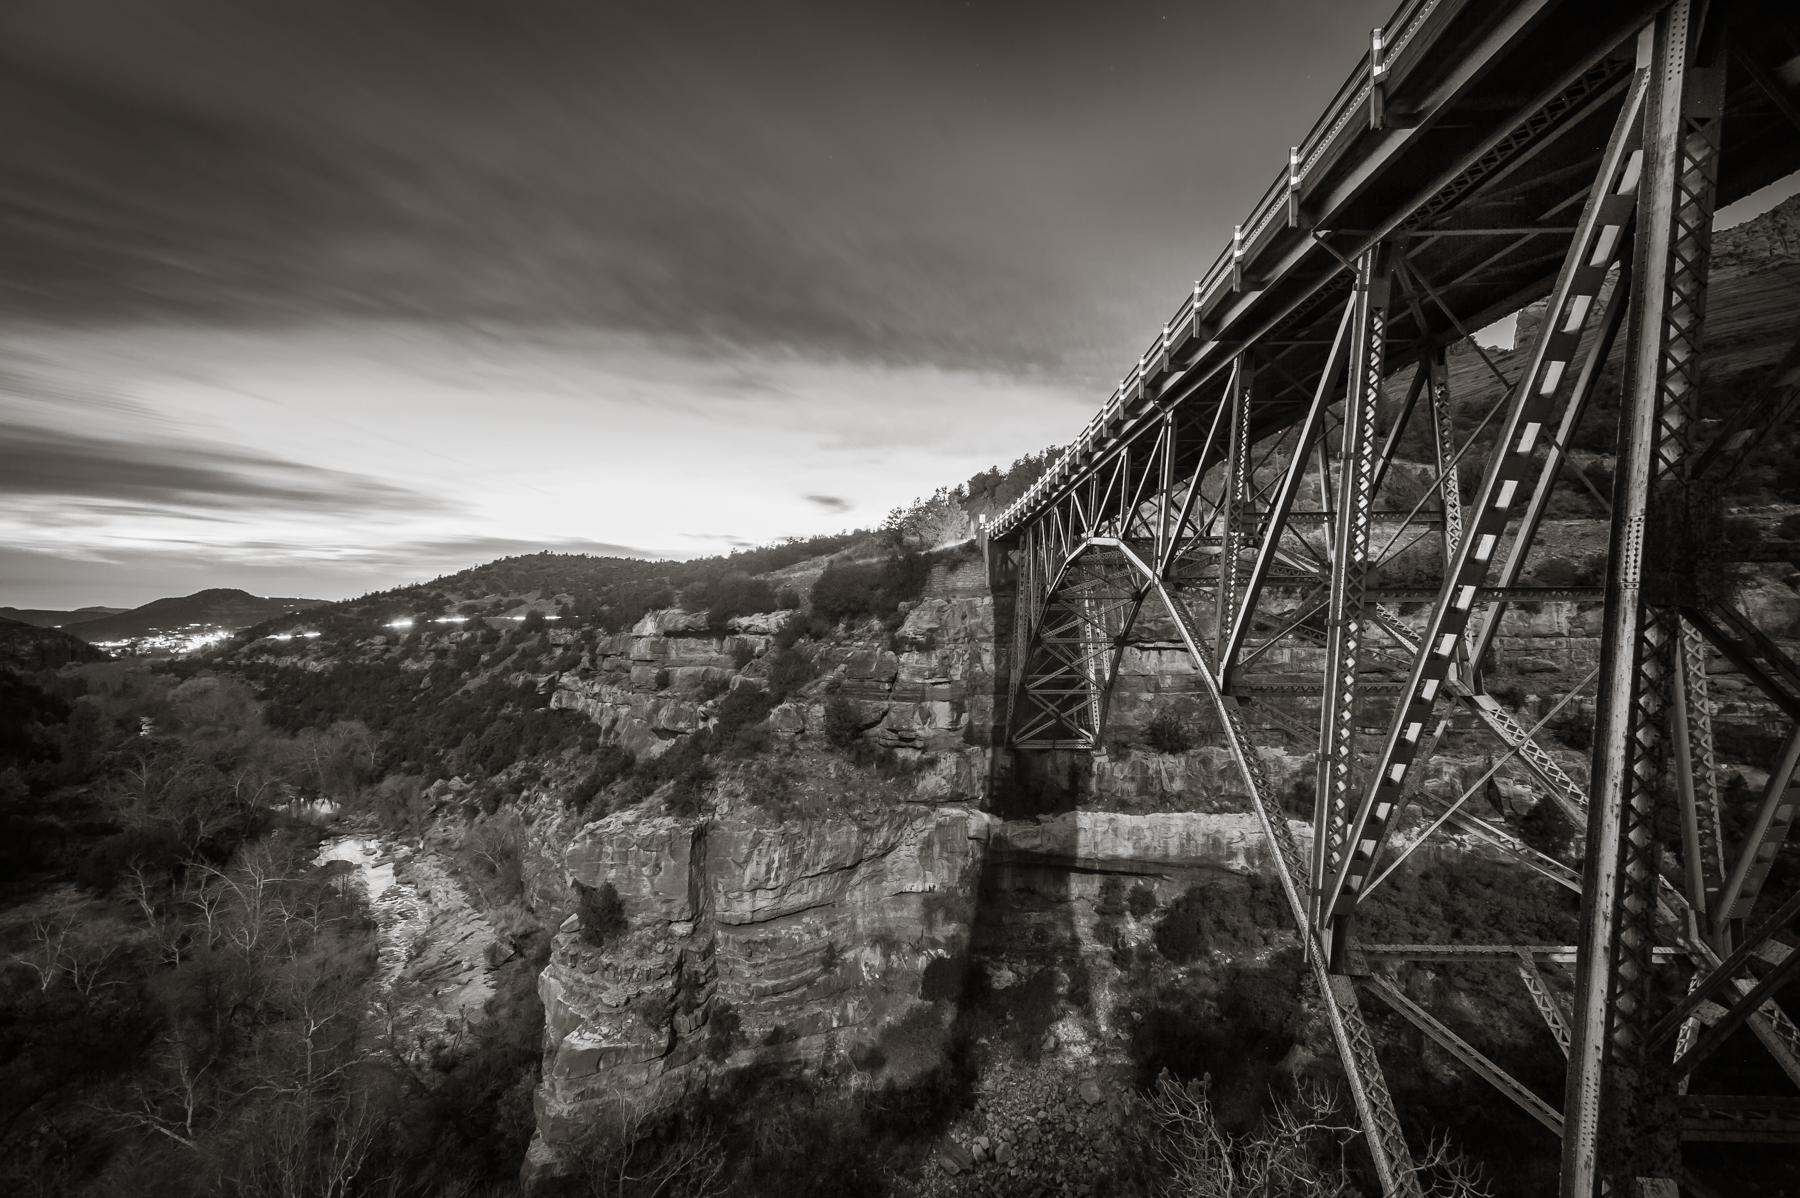 Midgely Bridge over Oak Creek Canyon  Sedona, AZ 2012